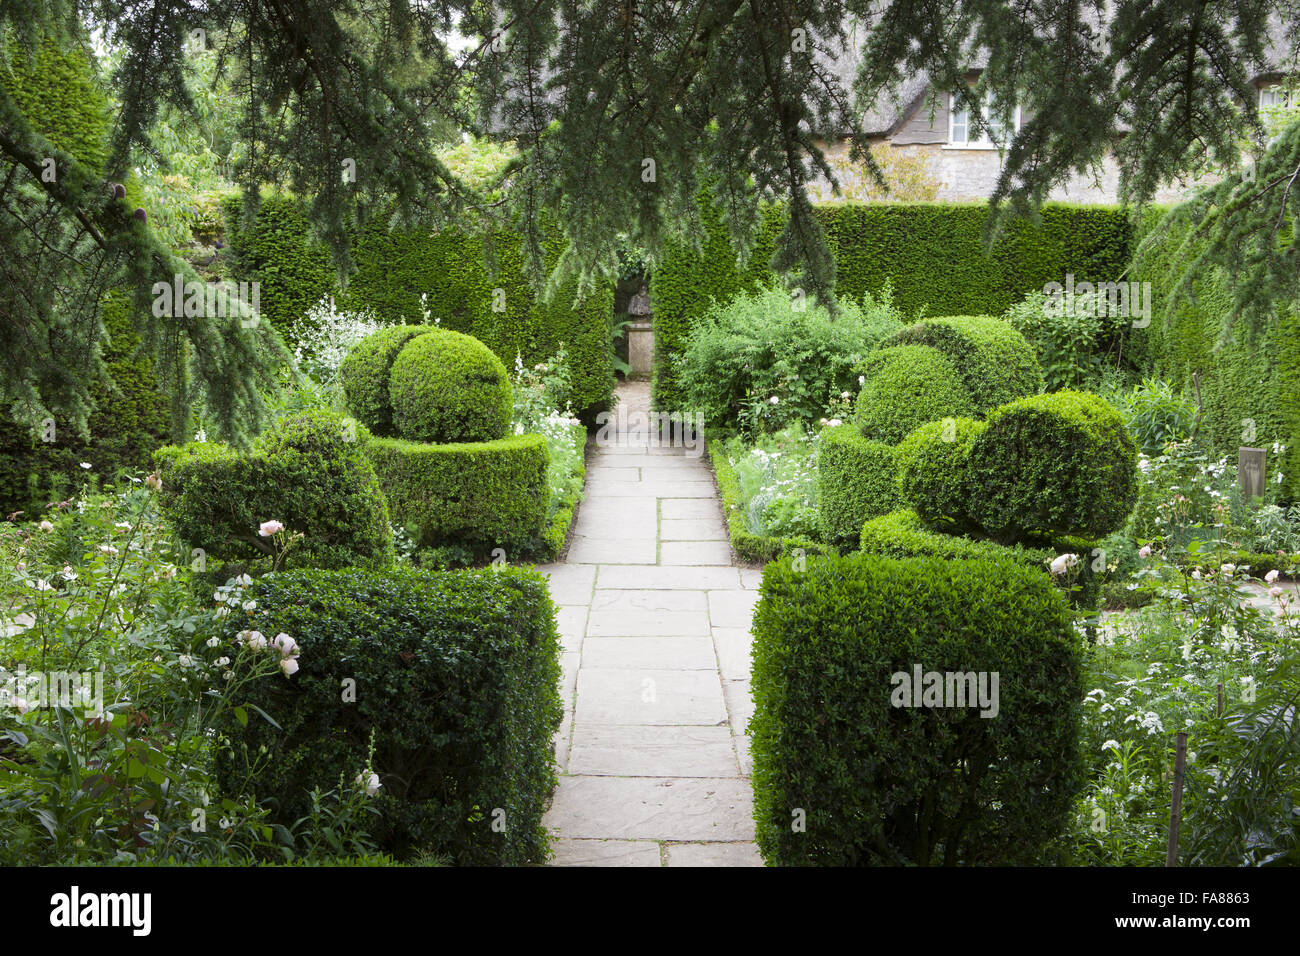 Superb Topiary Box Part - 14: Stock Photo - The White Garden With Yew Hedges And Box Topiary At Hidcote,  Gloucestershire, In June